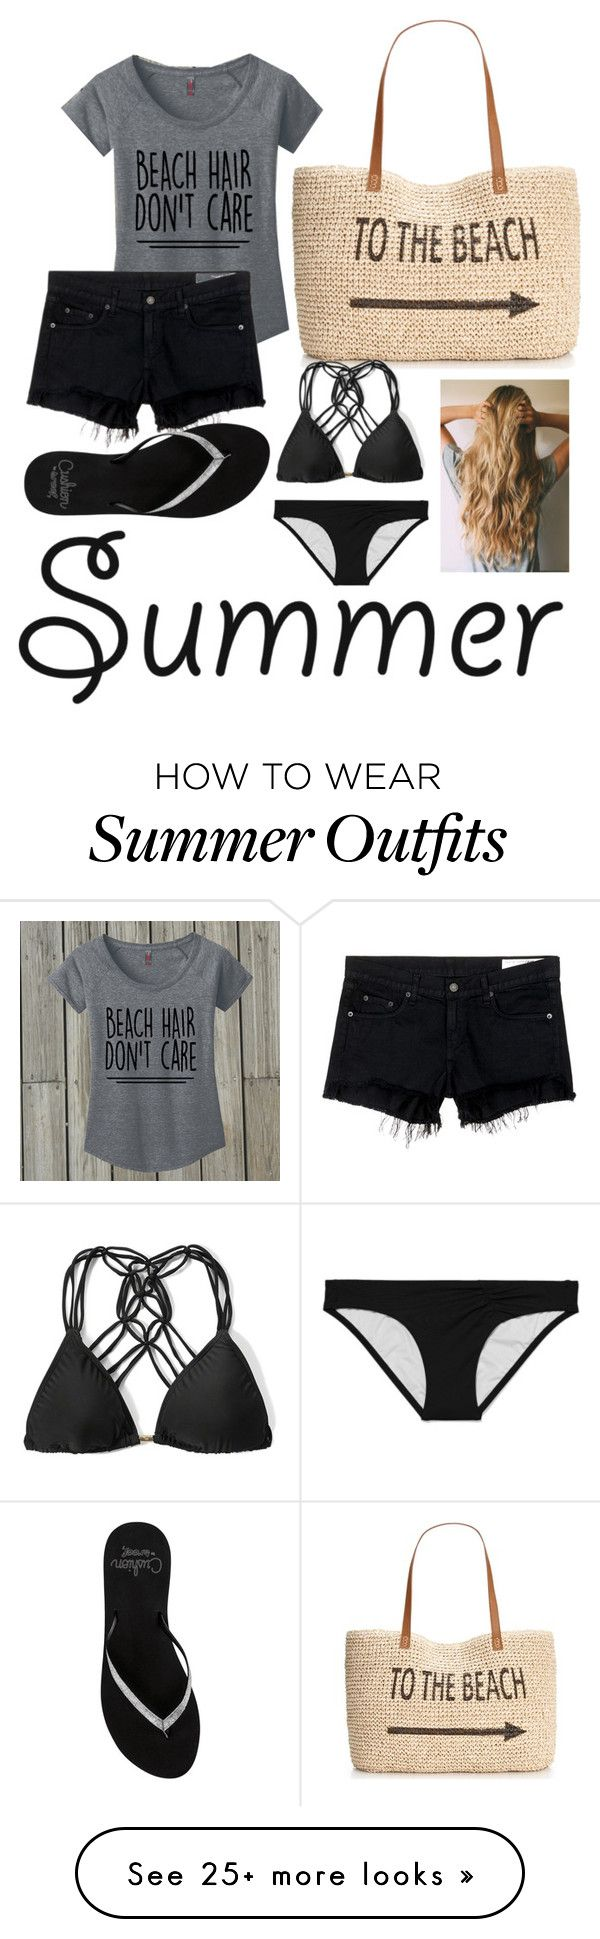 """""""Beach Outfit"""" by destanee-722 on Polyvore featuring Style & Co., rag & bone/JEAN, Reef, Victoria's Secret, Abercrombie & Fitch and strawbags"""